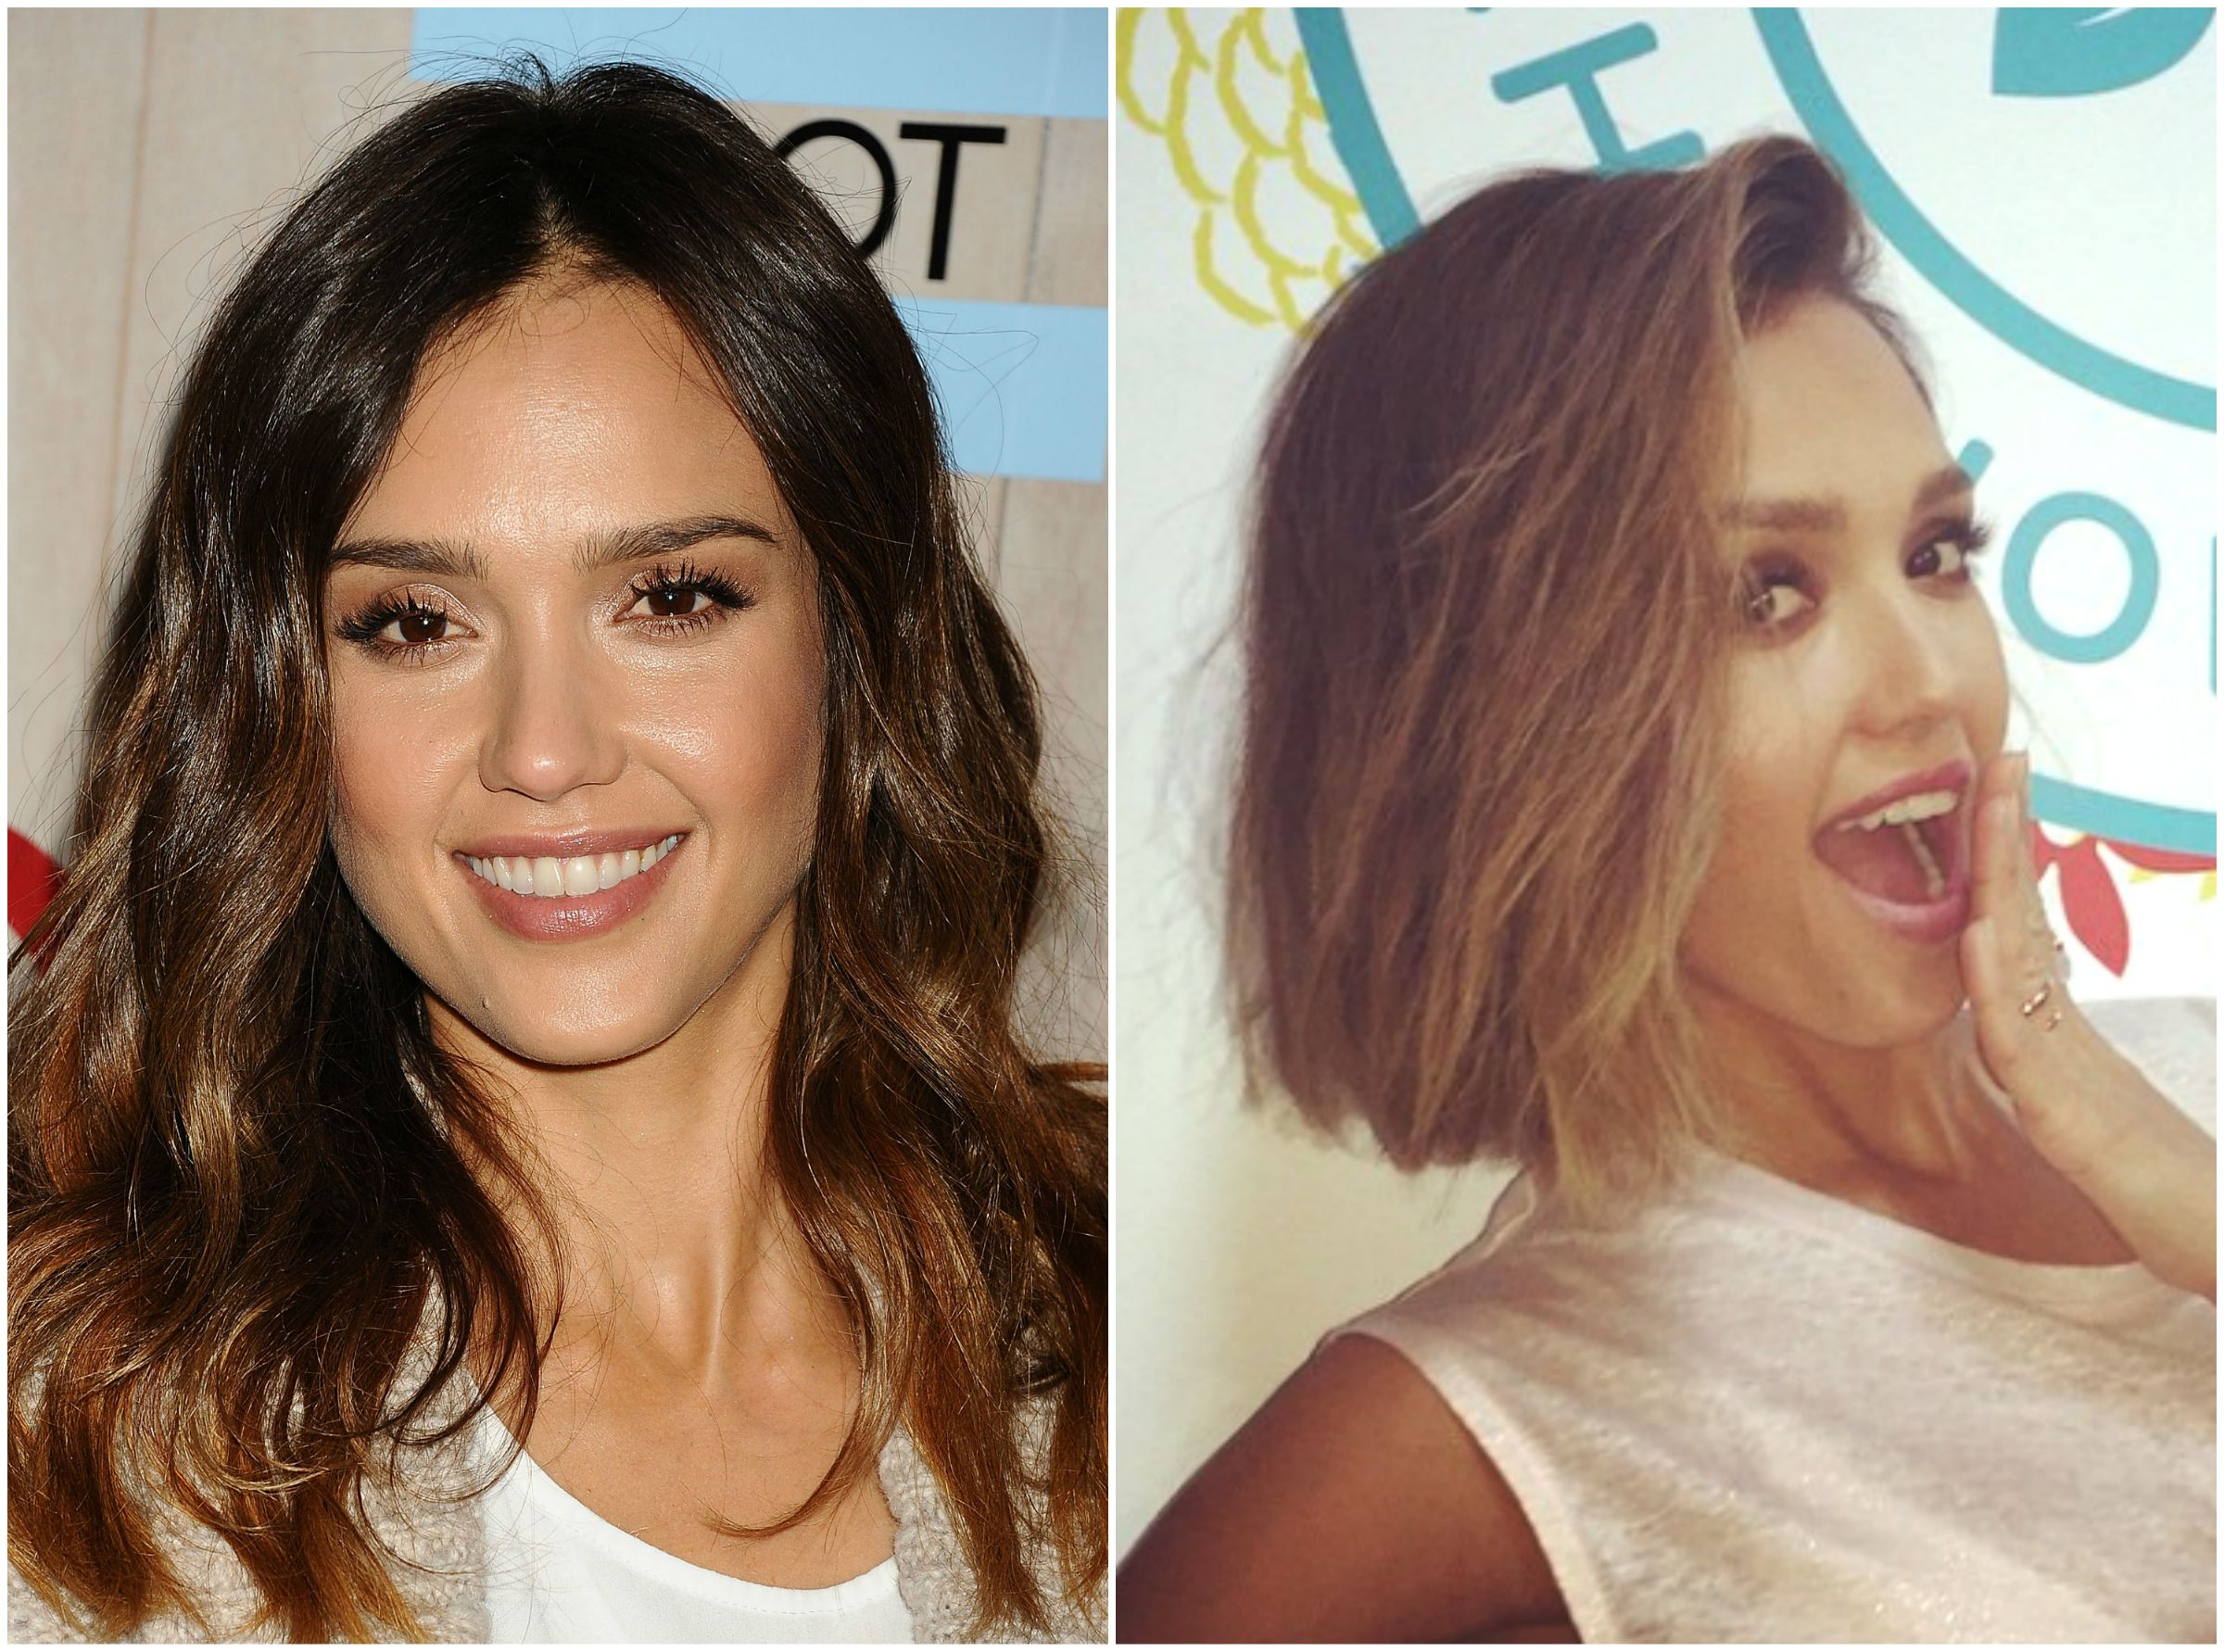 Jessica Alba Shows Off Her Flirty New 'do 30 - Life & Style intended for Jessica Alba Short Haircuts